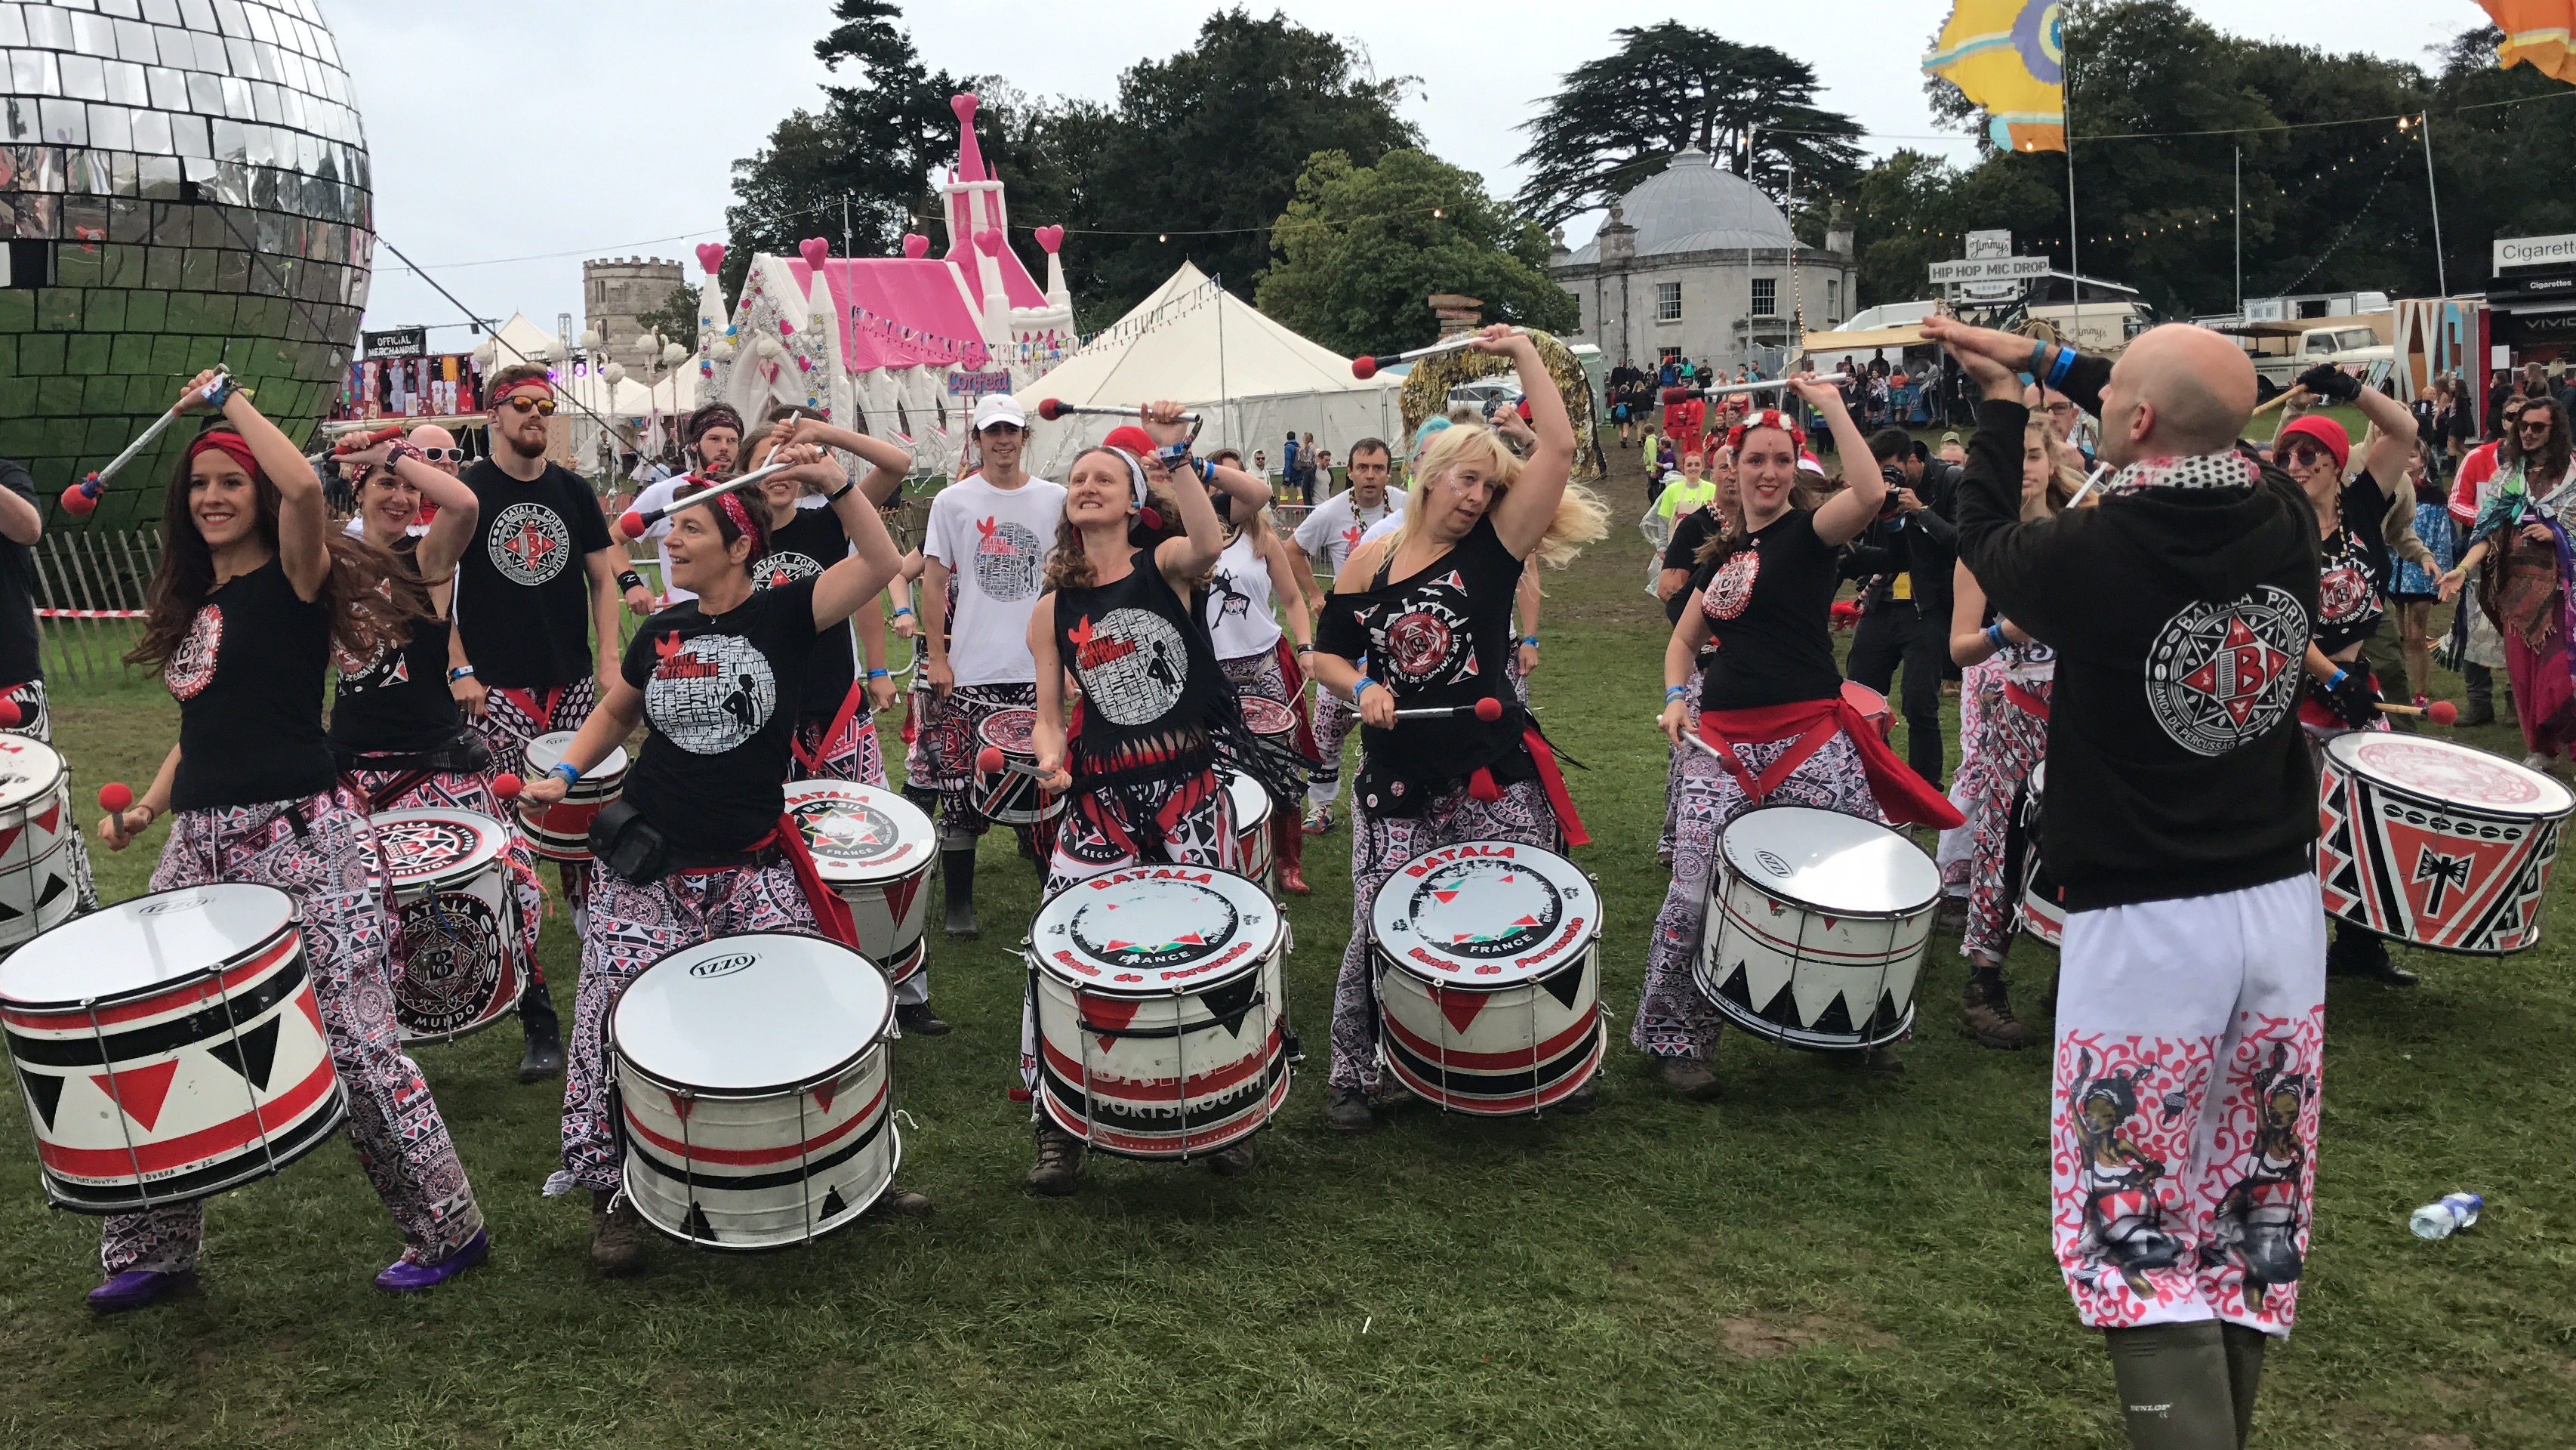 Batala Portsmouth doing their thing drumming at Bestival